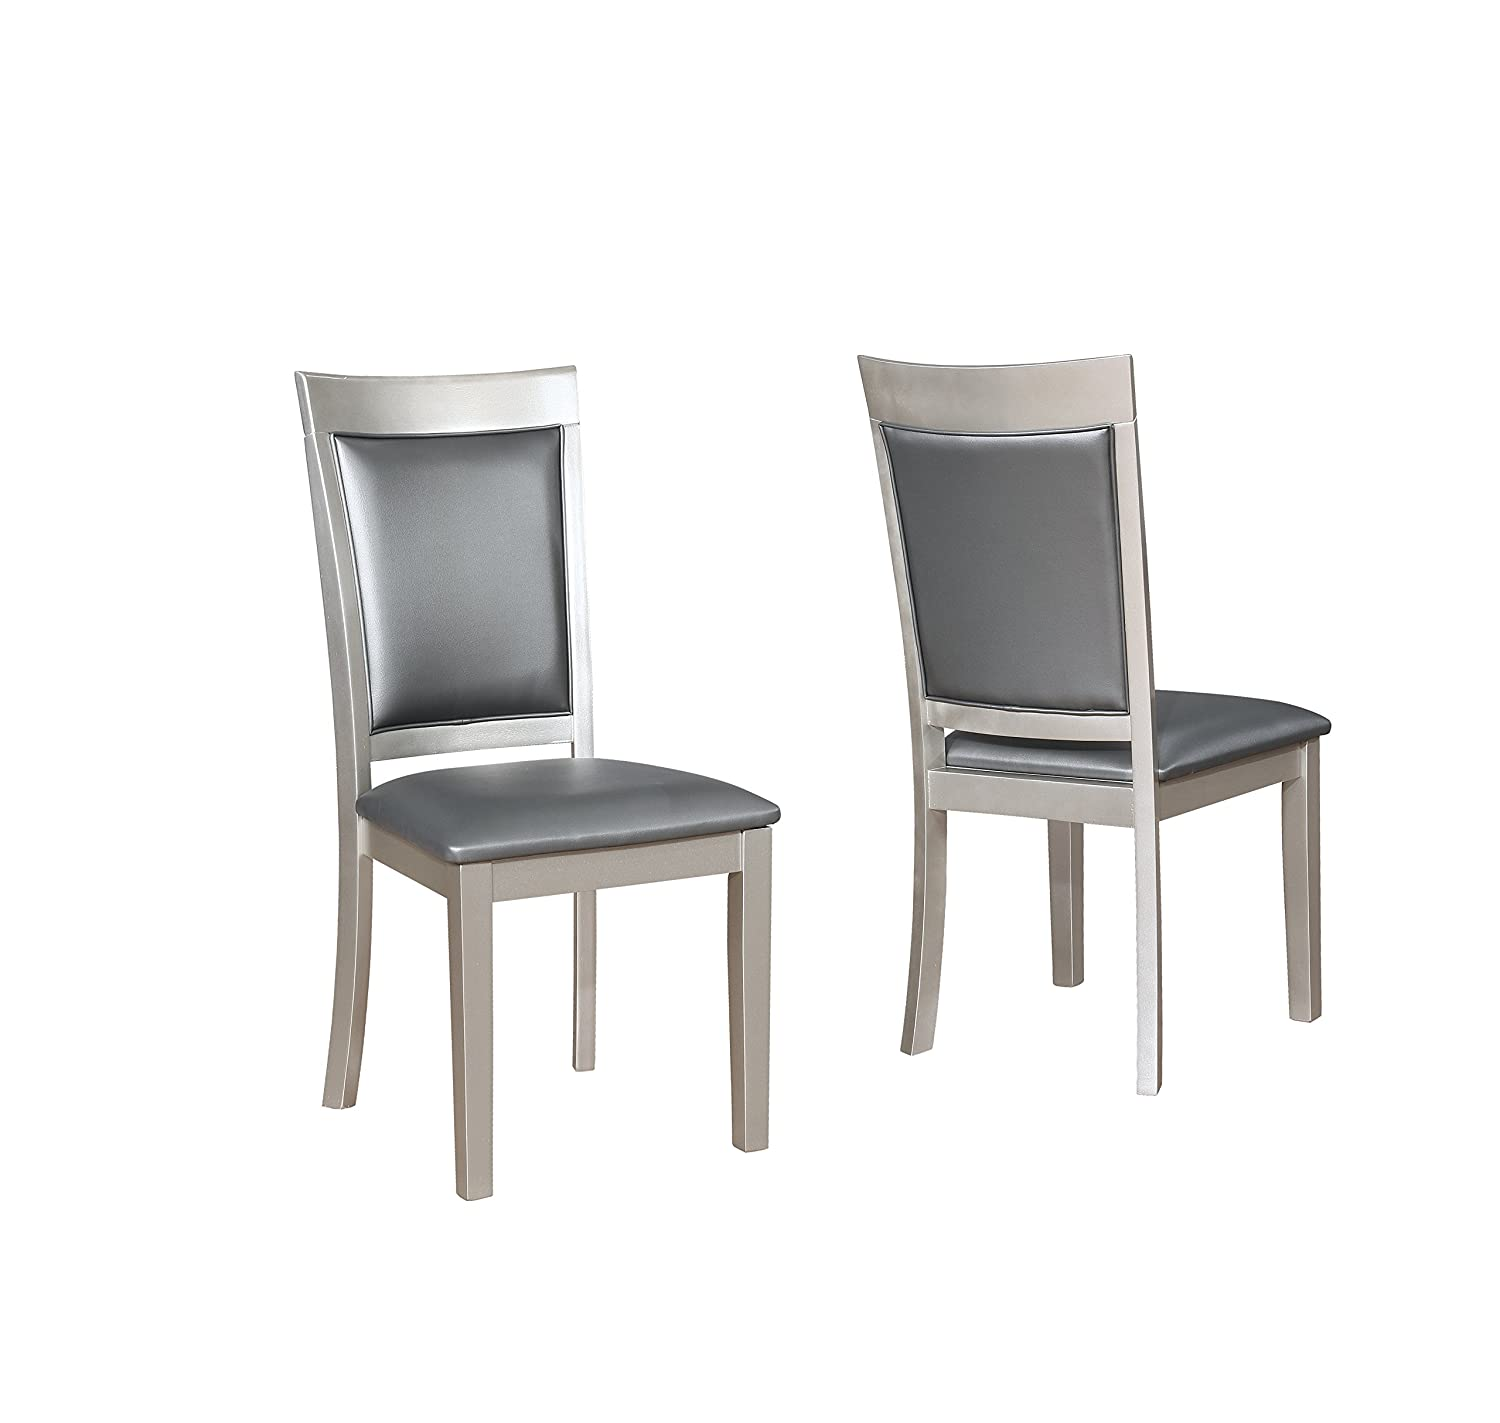 Roundhill Furniture Avignor Contemporary Simplicity Dining Chair, Set of 2